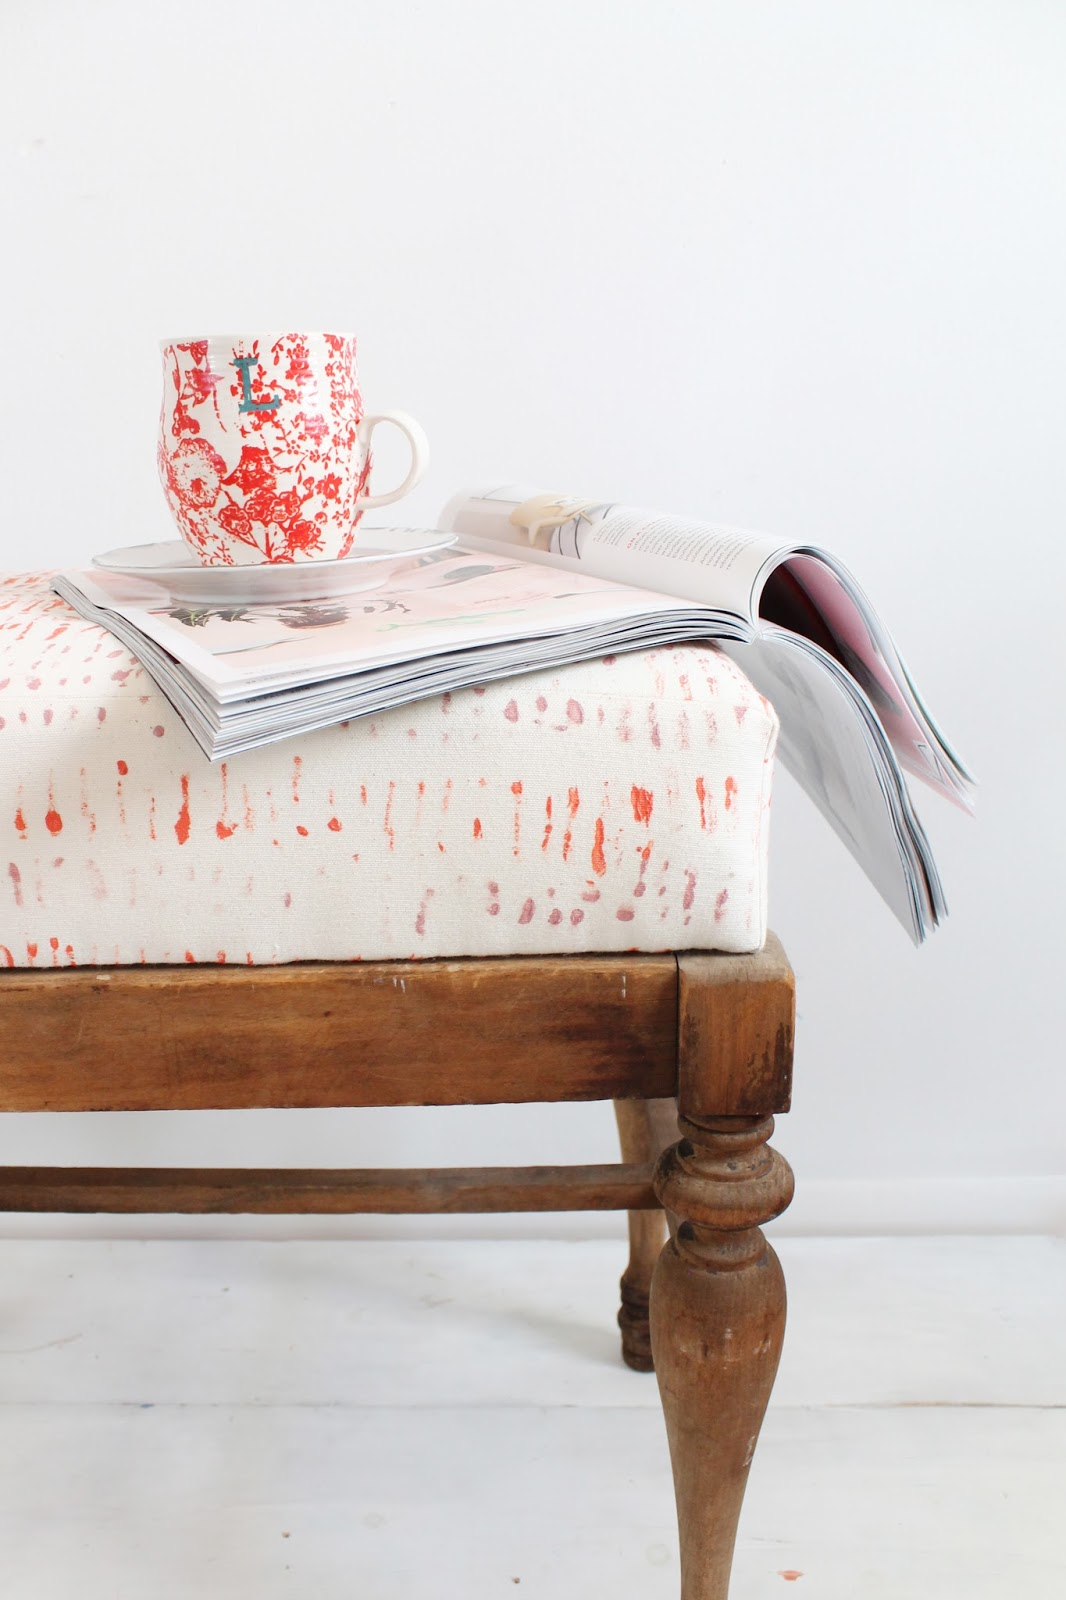 Make Your Own Printed Fabrics for DIY Upholstery Projects